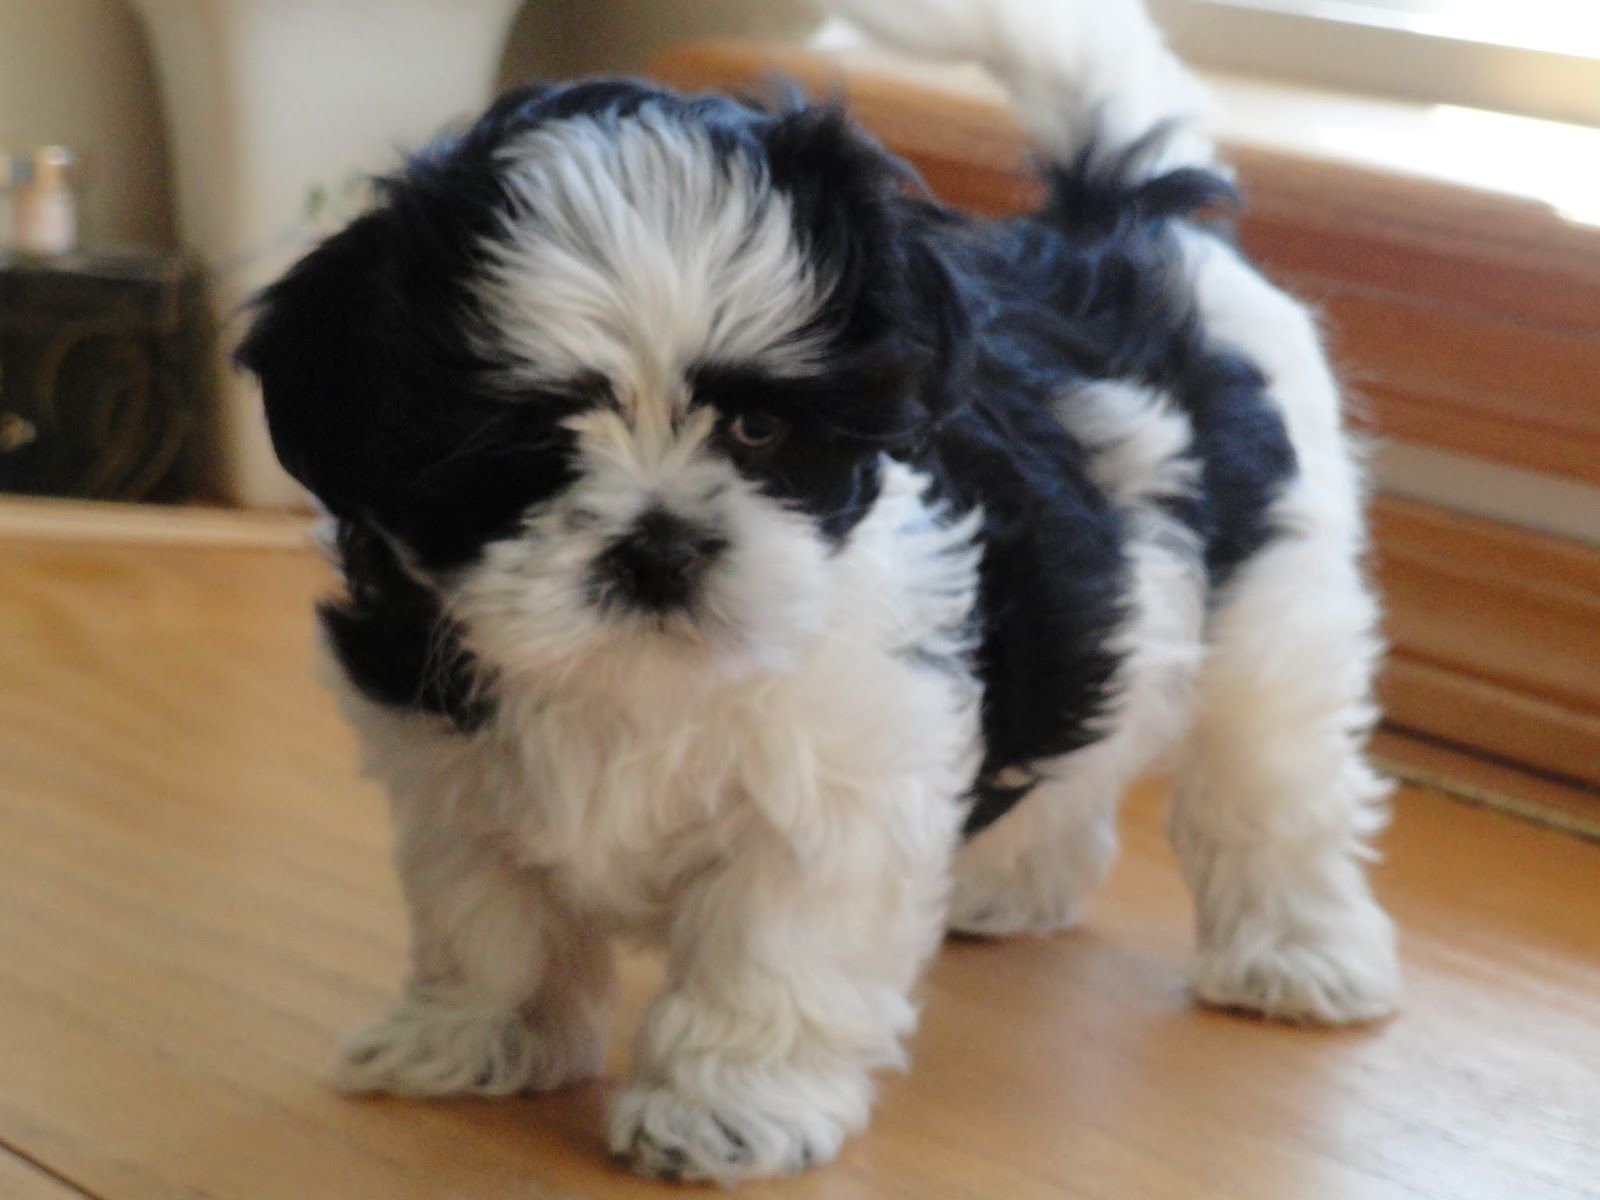 Marvelous Malshi S Toffee Truffle S Most Recent Pups They All Are Now Happily Situated With New Families Maltipoo Puppy Teddy Bear Puppies Cute Dogs